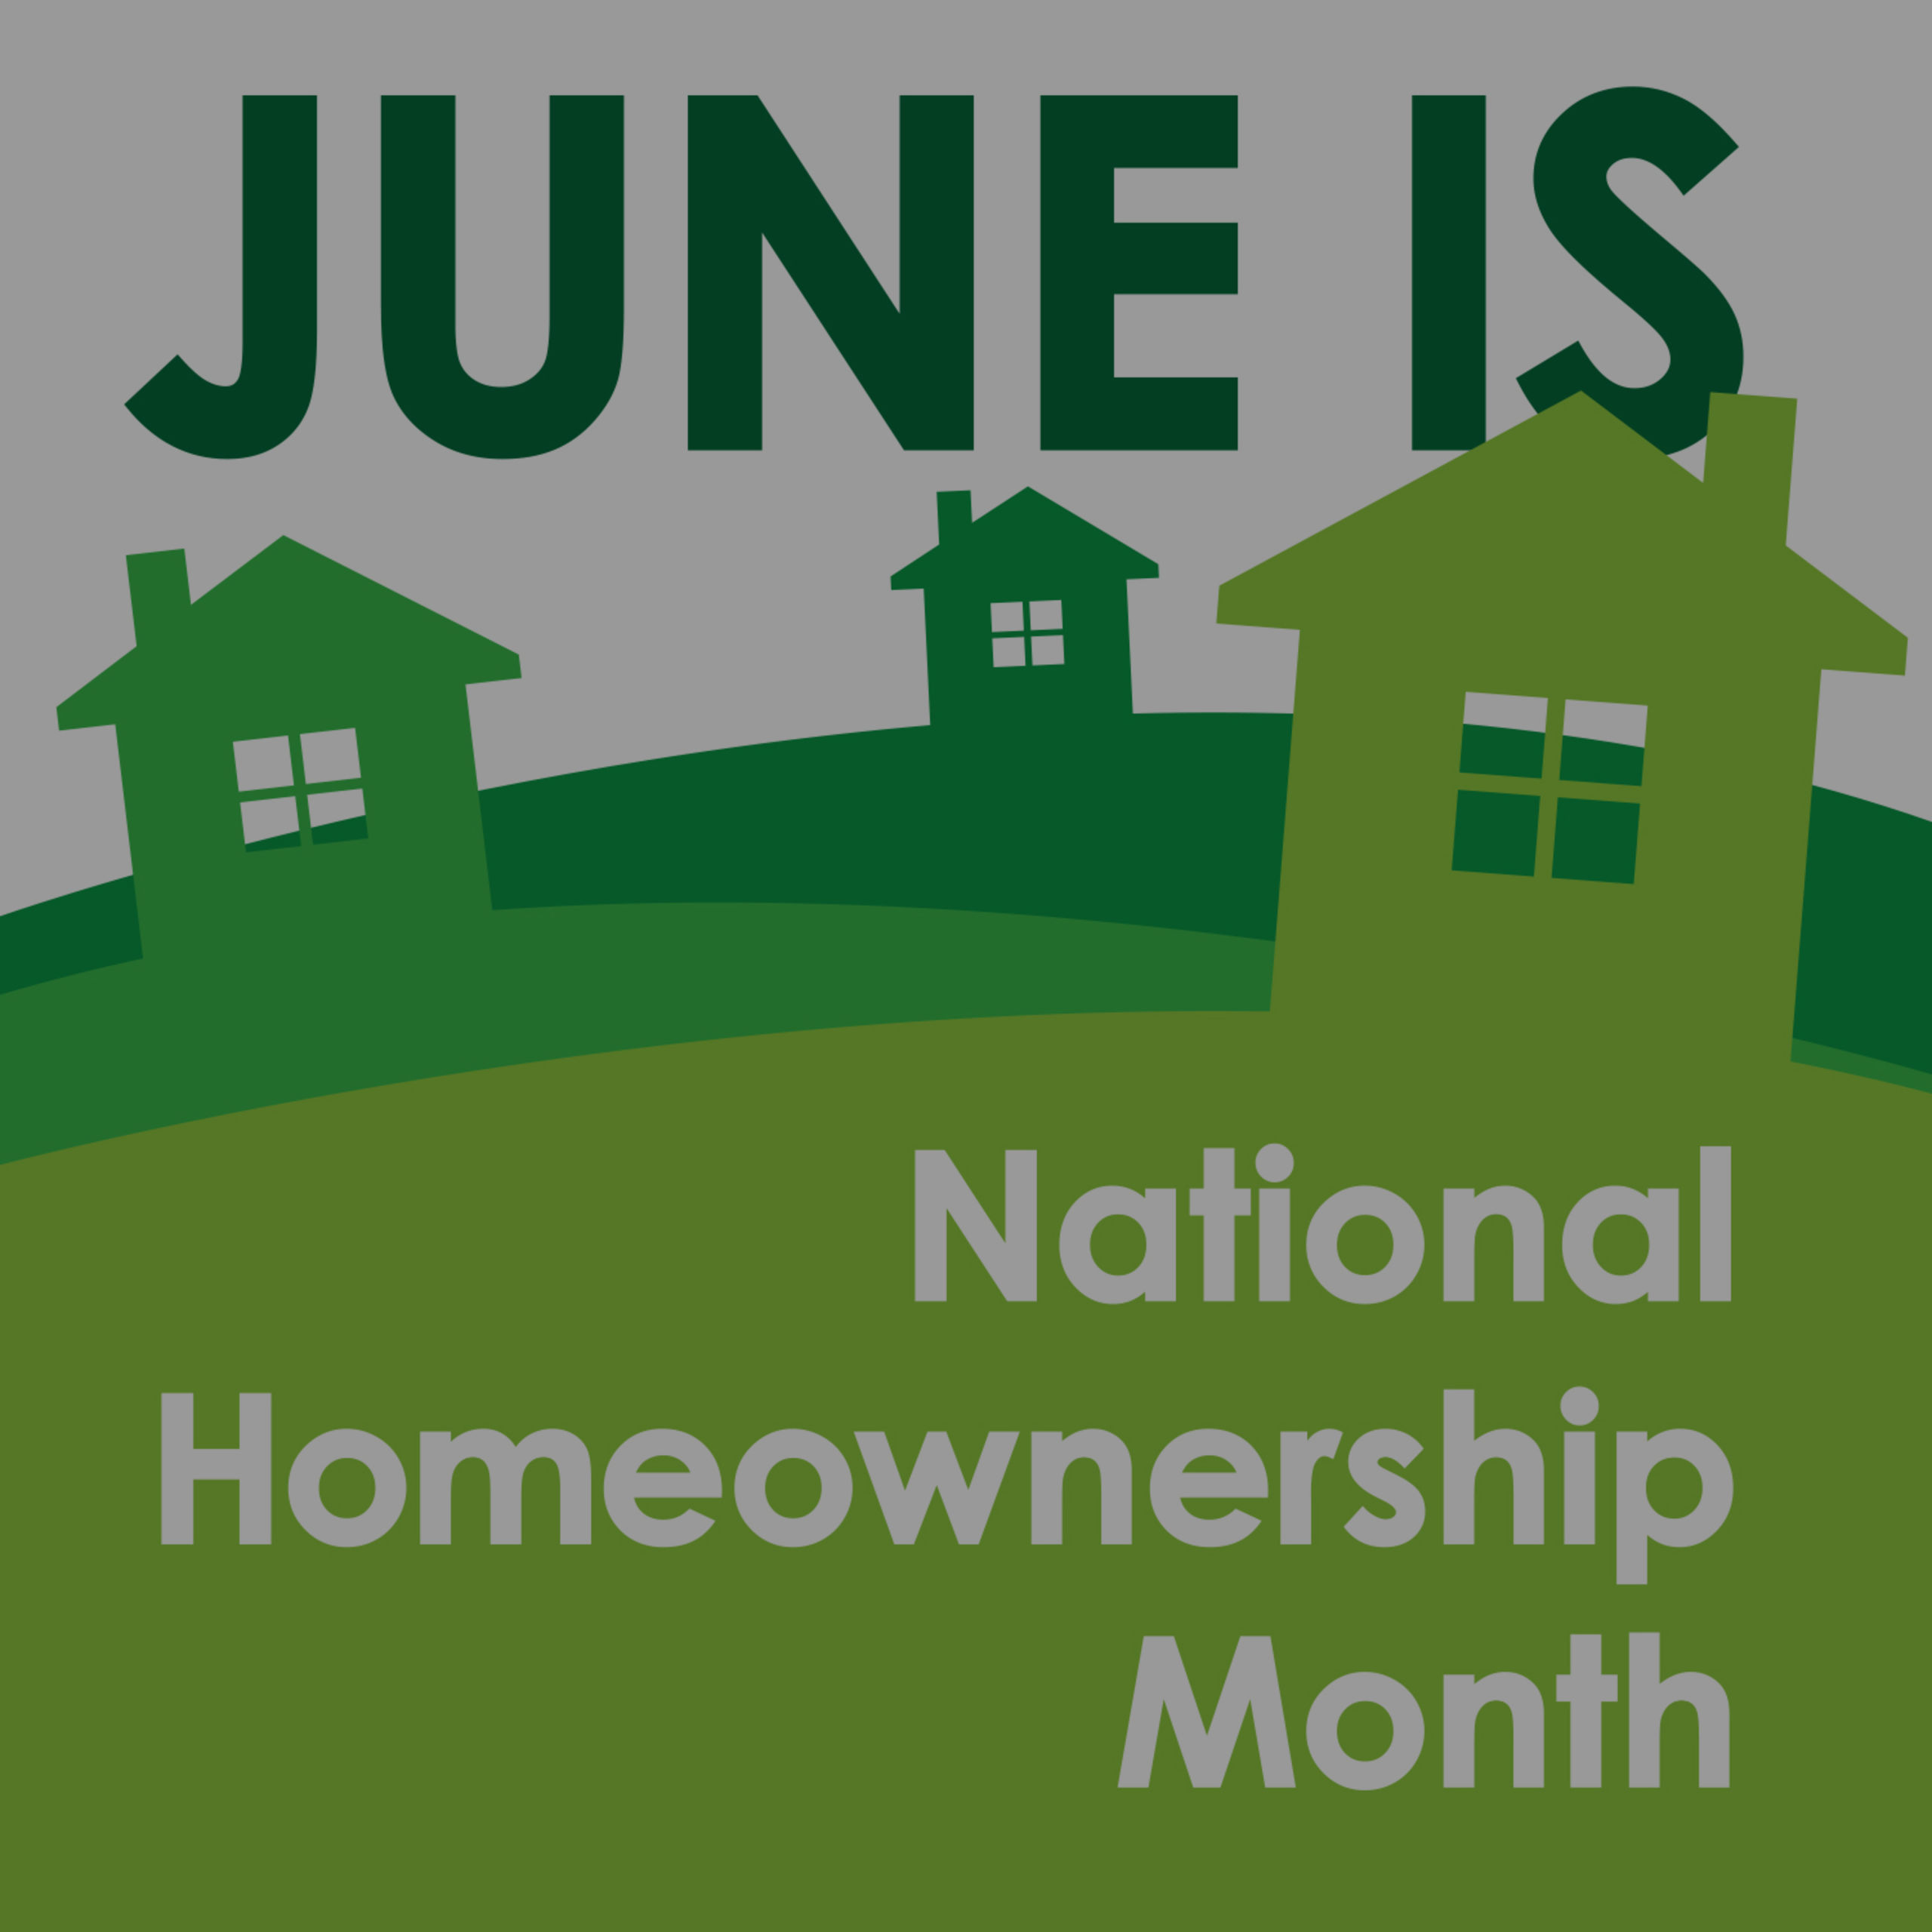 June is National Homeownership Month